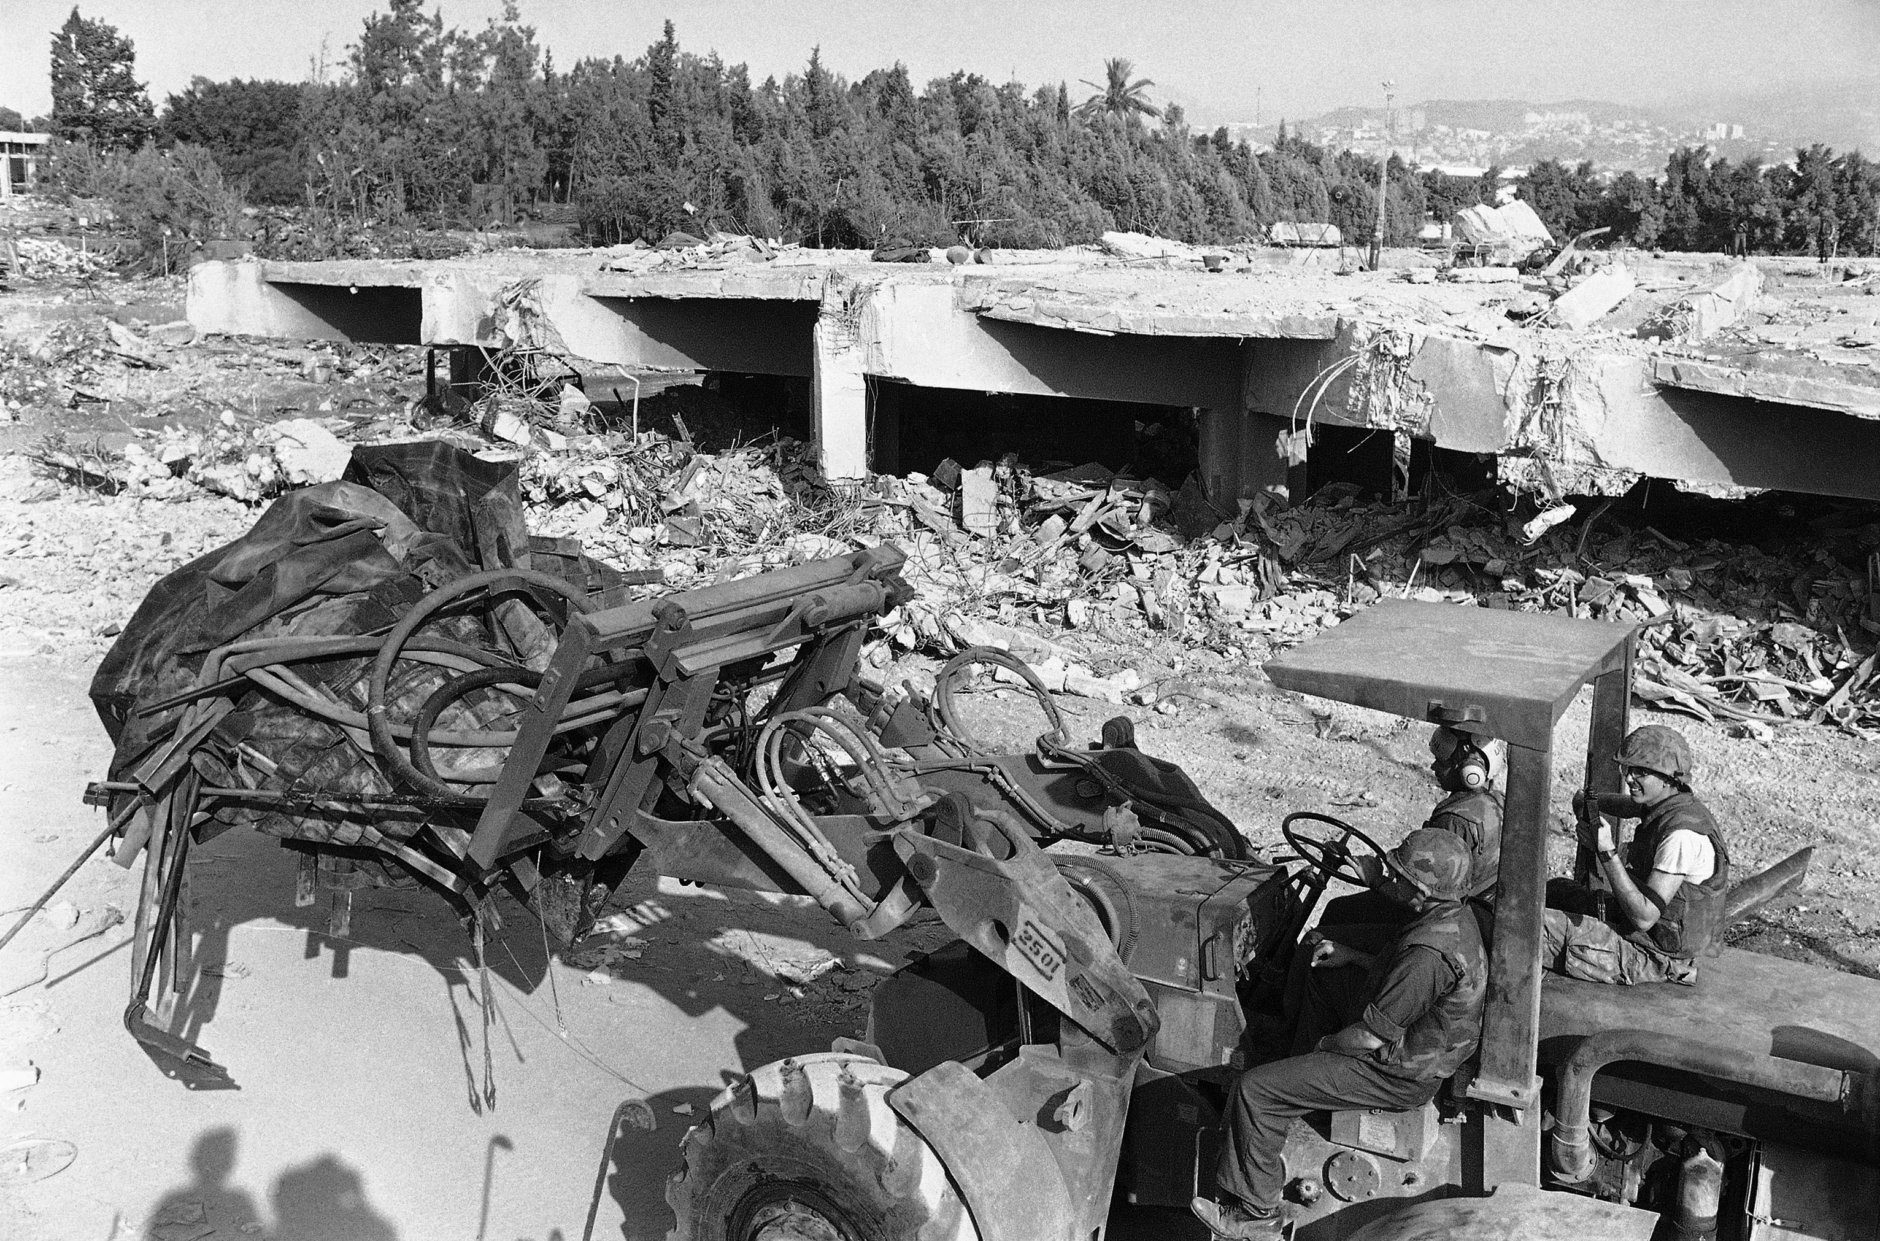 A bulldozer manned by U.S. Marines is shown at Beirut's International Airport, Oct. 30, 1983.  Work and the recovery of more bodies continues following last Sunday's terrorist attack in Lebanon where the death toll has now reached 230 according to a U.S. Army spokesman.  (AP Photo/Bill Foley)